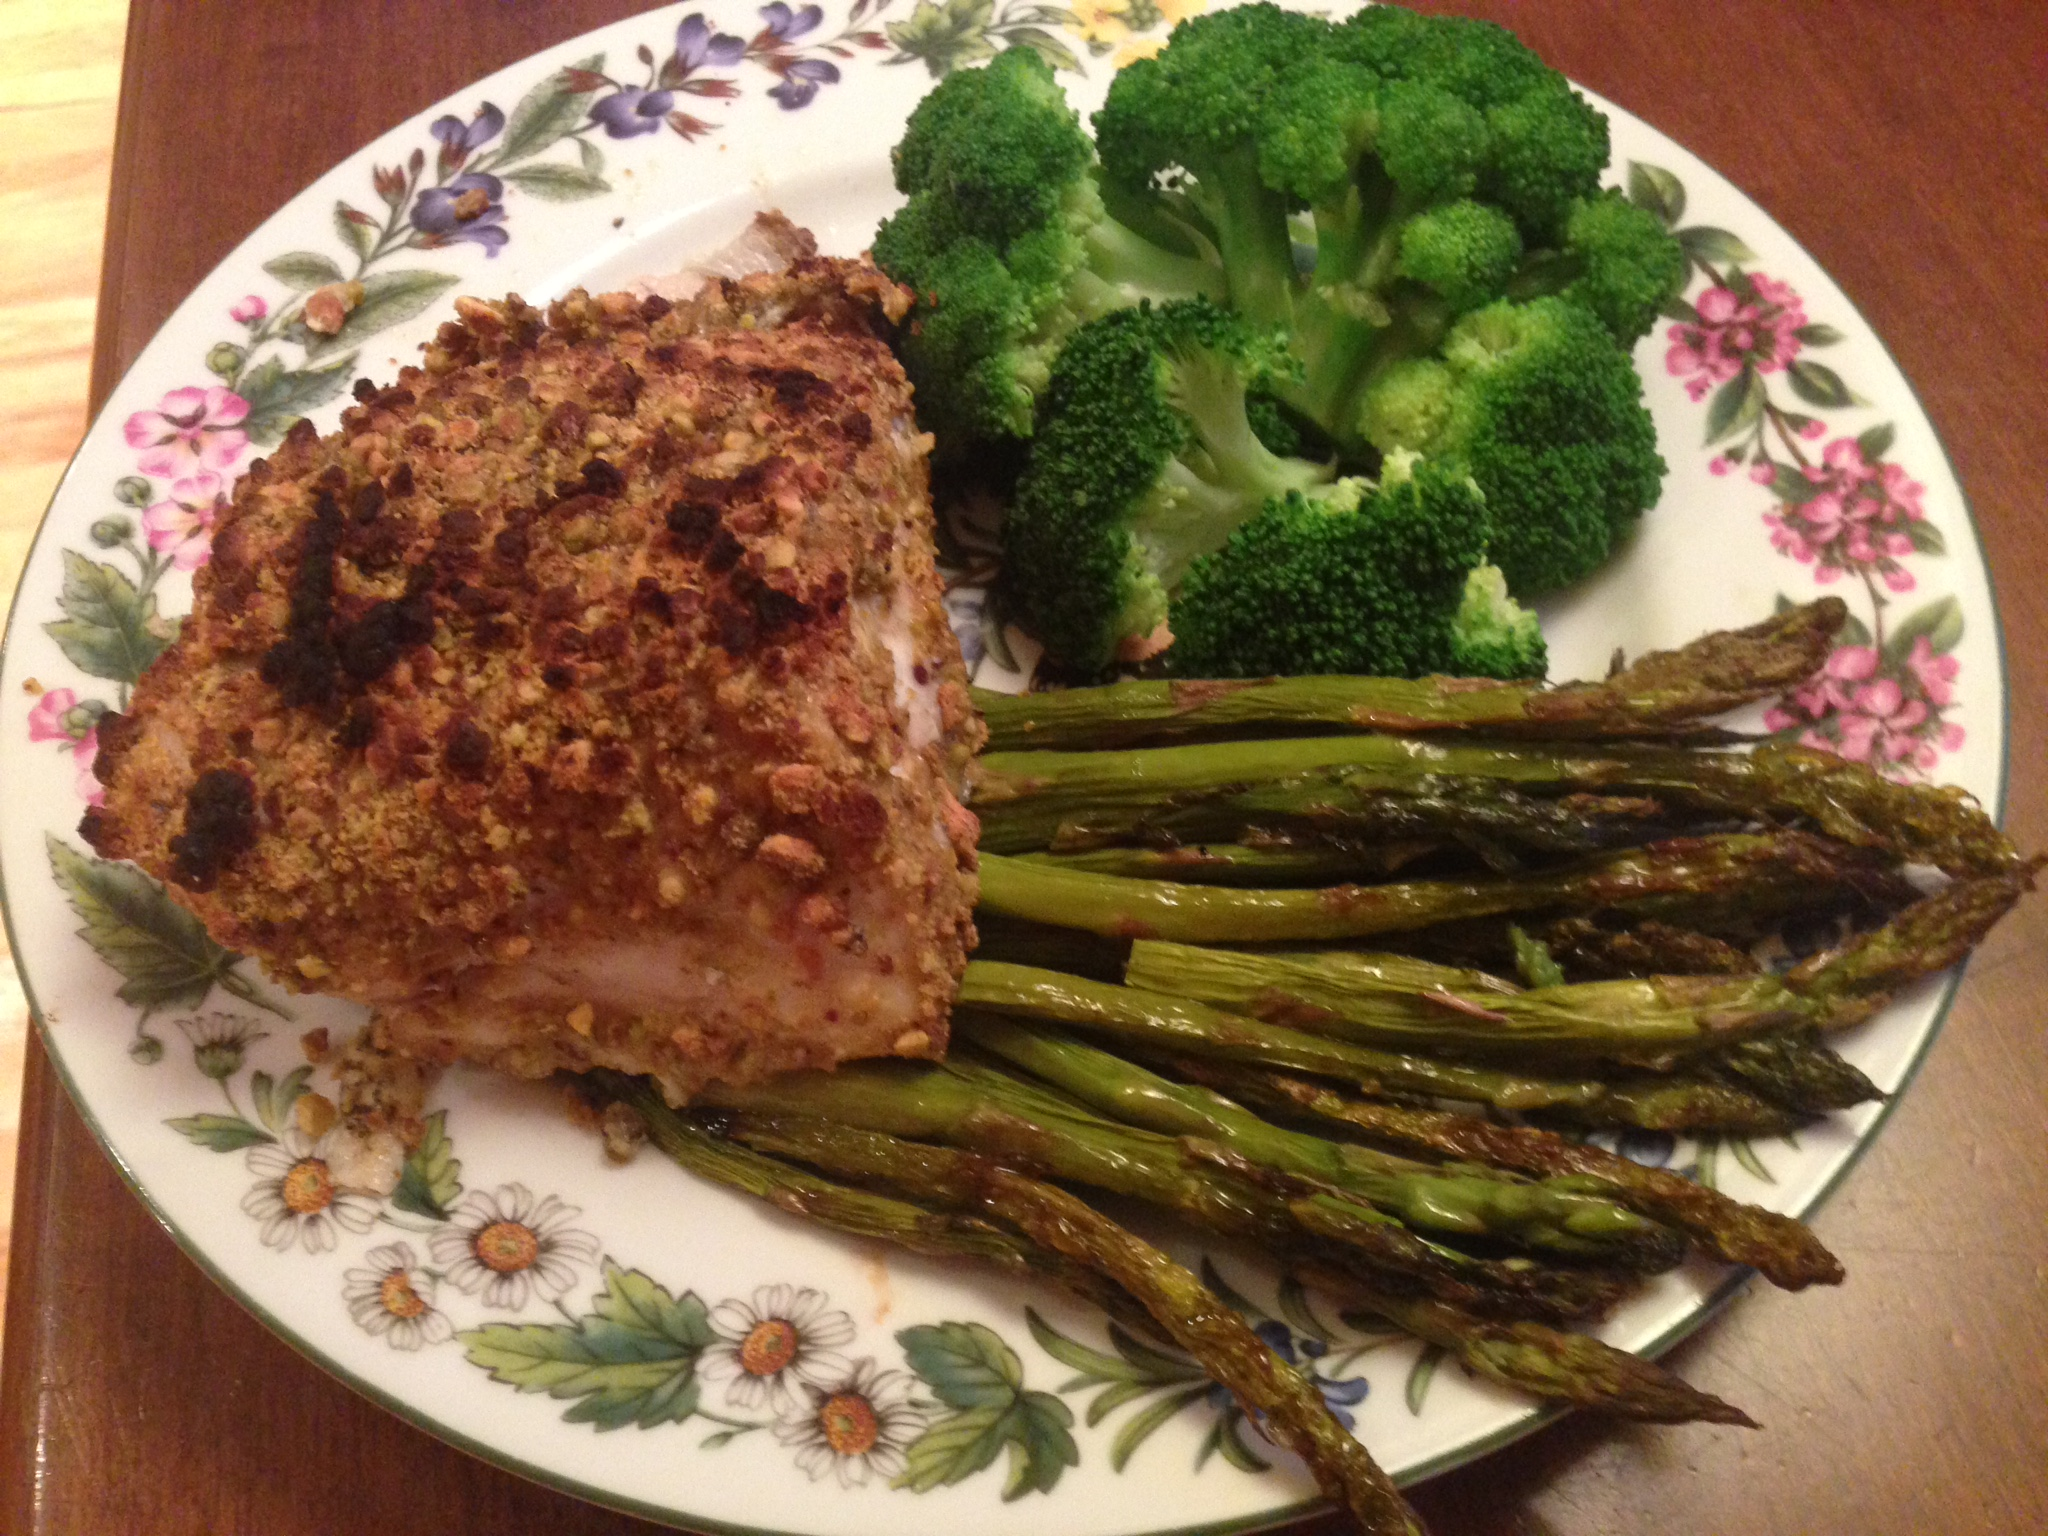 Pistachio Crusted Grouper with Roasted Asparagus and Steamed Broccoli